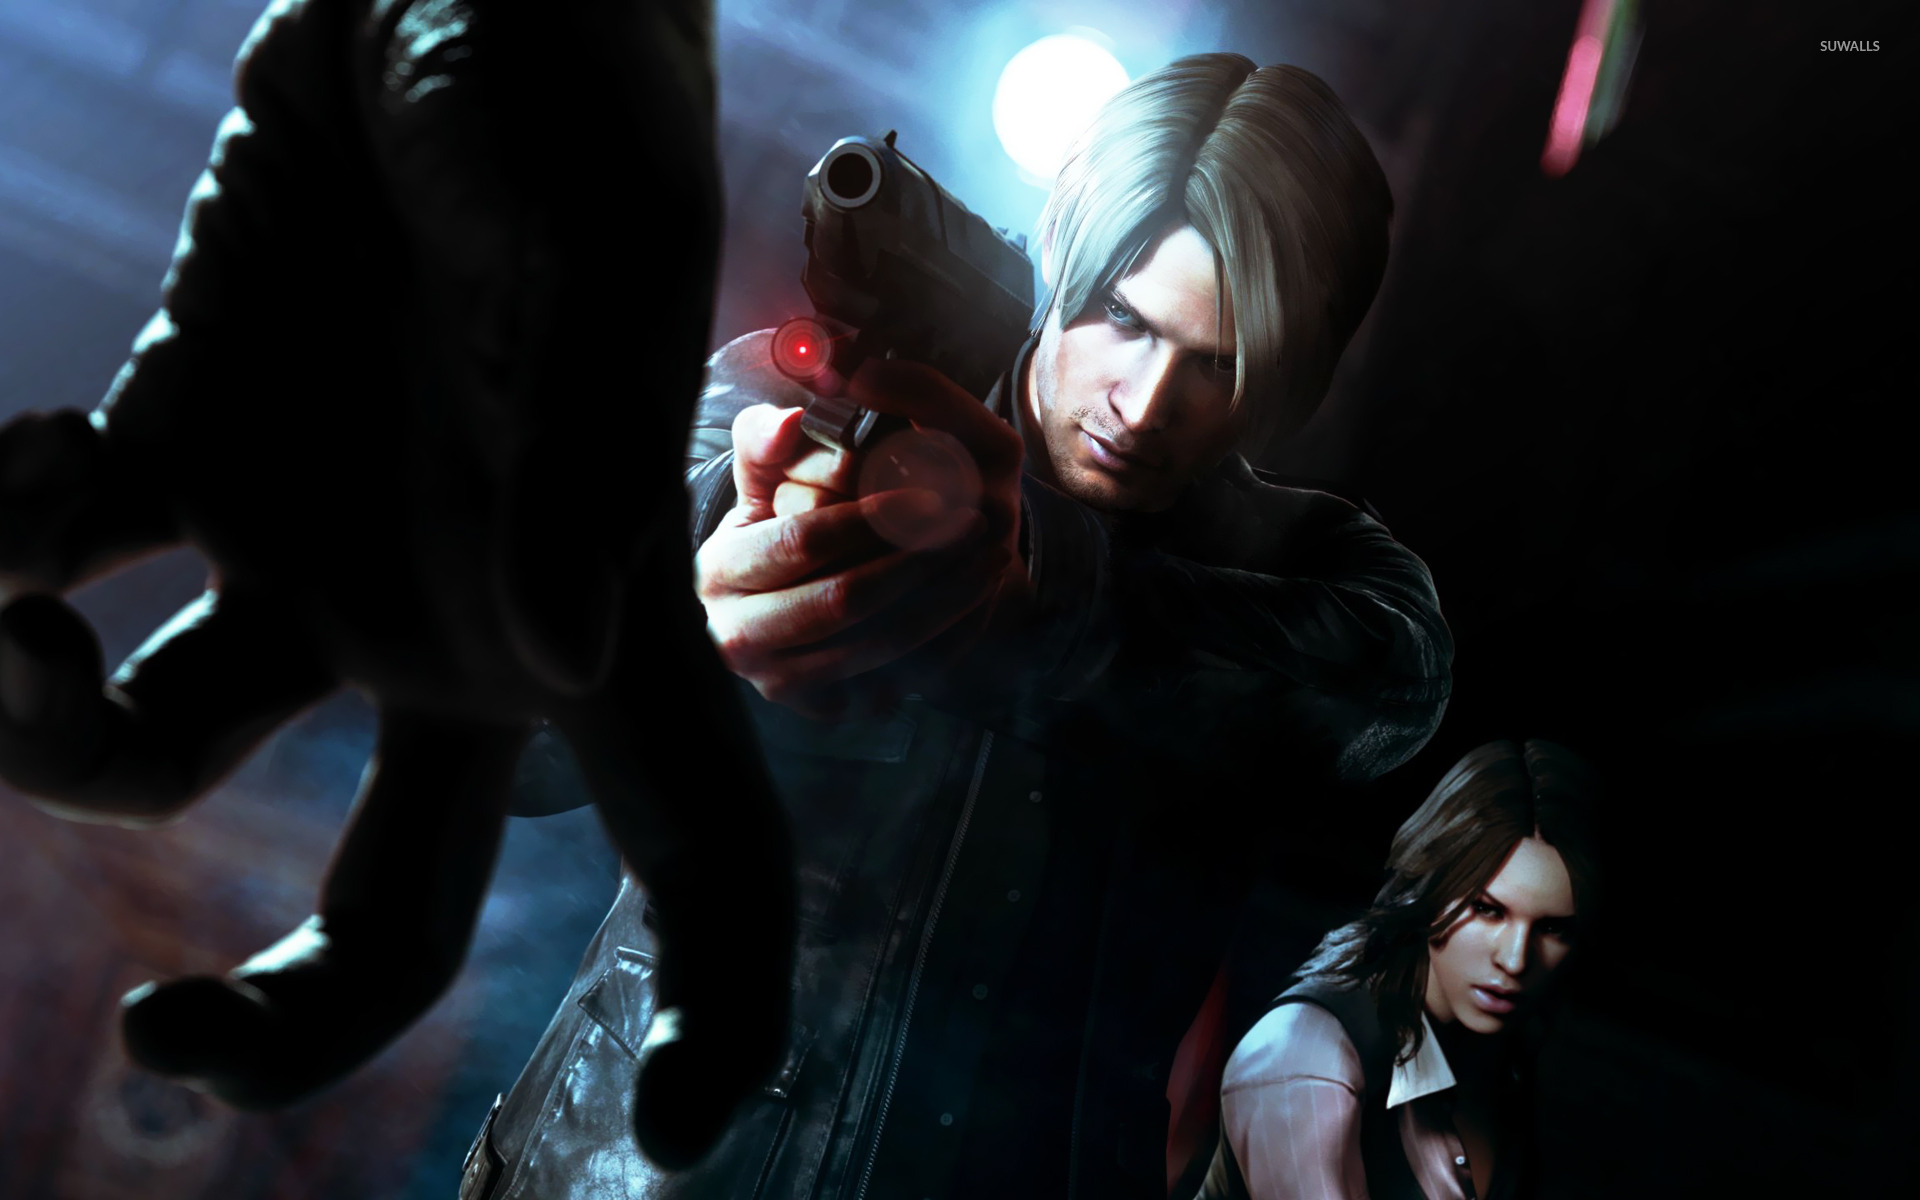 Resident Evil 6 7 Wallpaper Game Wallpapers 14276